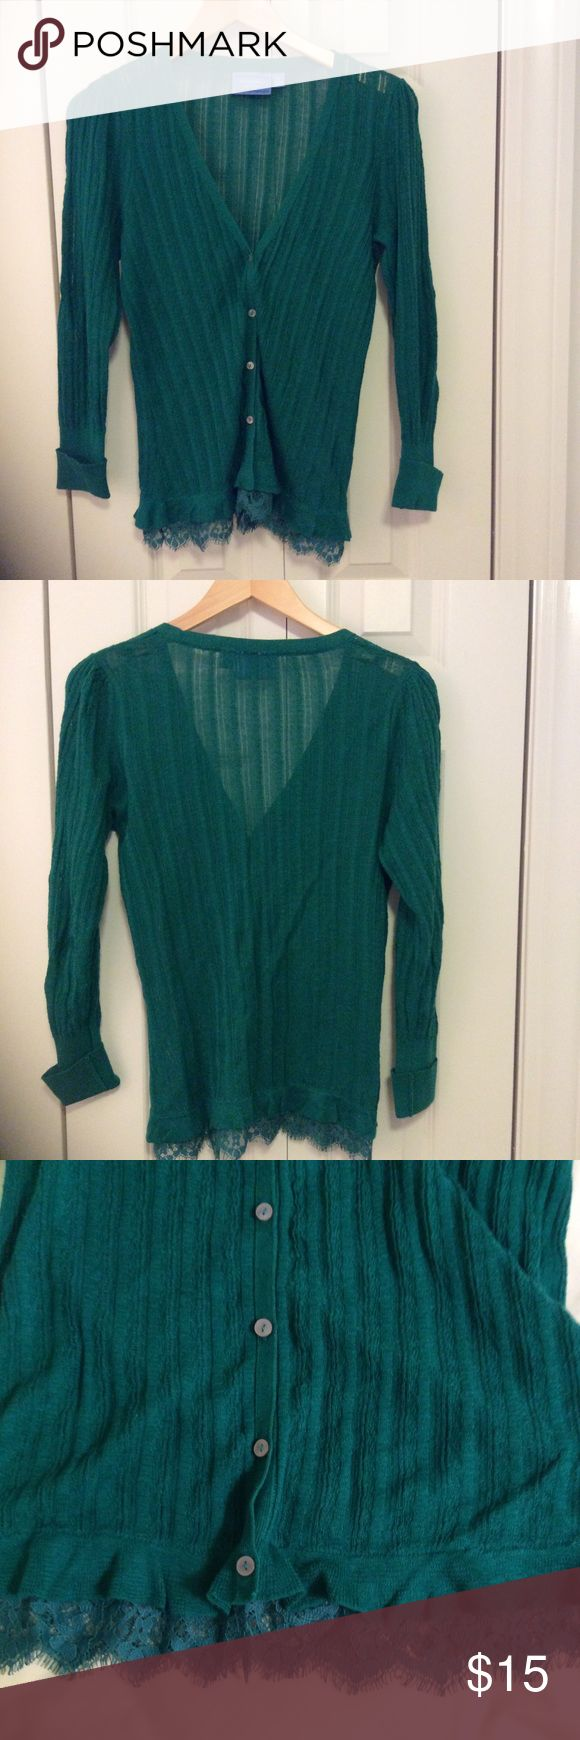 Simply Vera Green Cardigan This Simply Vera cardigan is emerald green with a lace detail along the edge. It's in good used condition.  From a smoke free, pet friendly home. No trades. Simply Vera Vera Wang Sweaters Cardigans